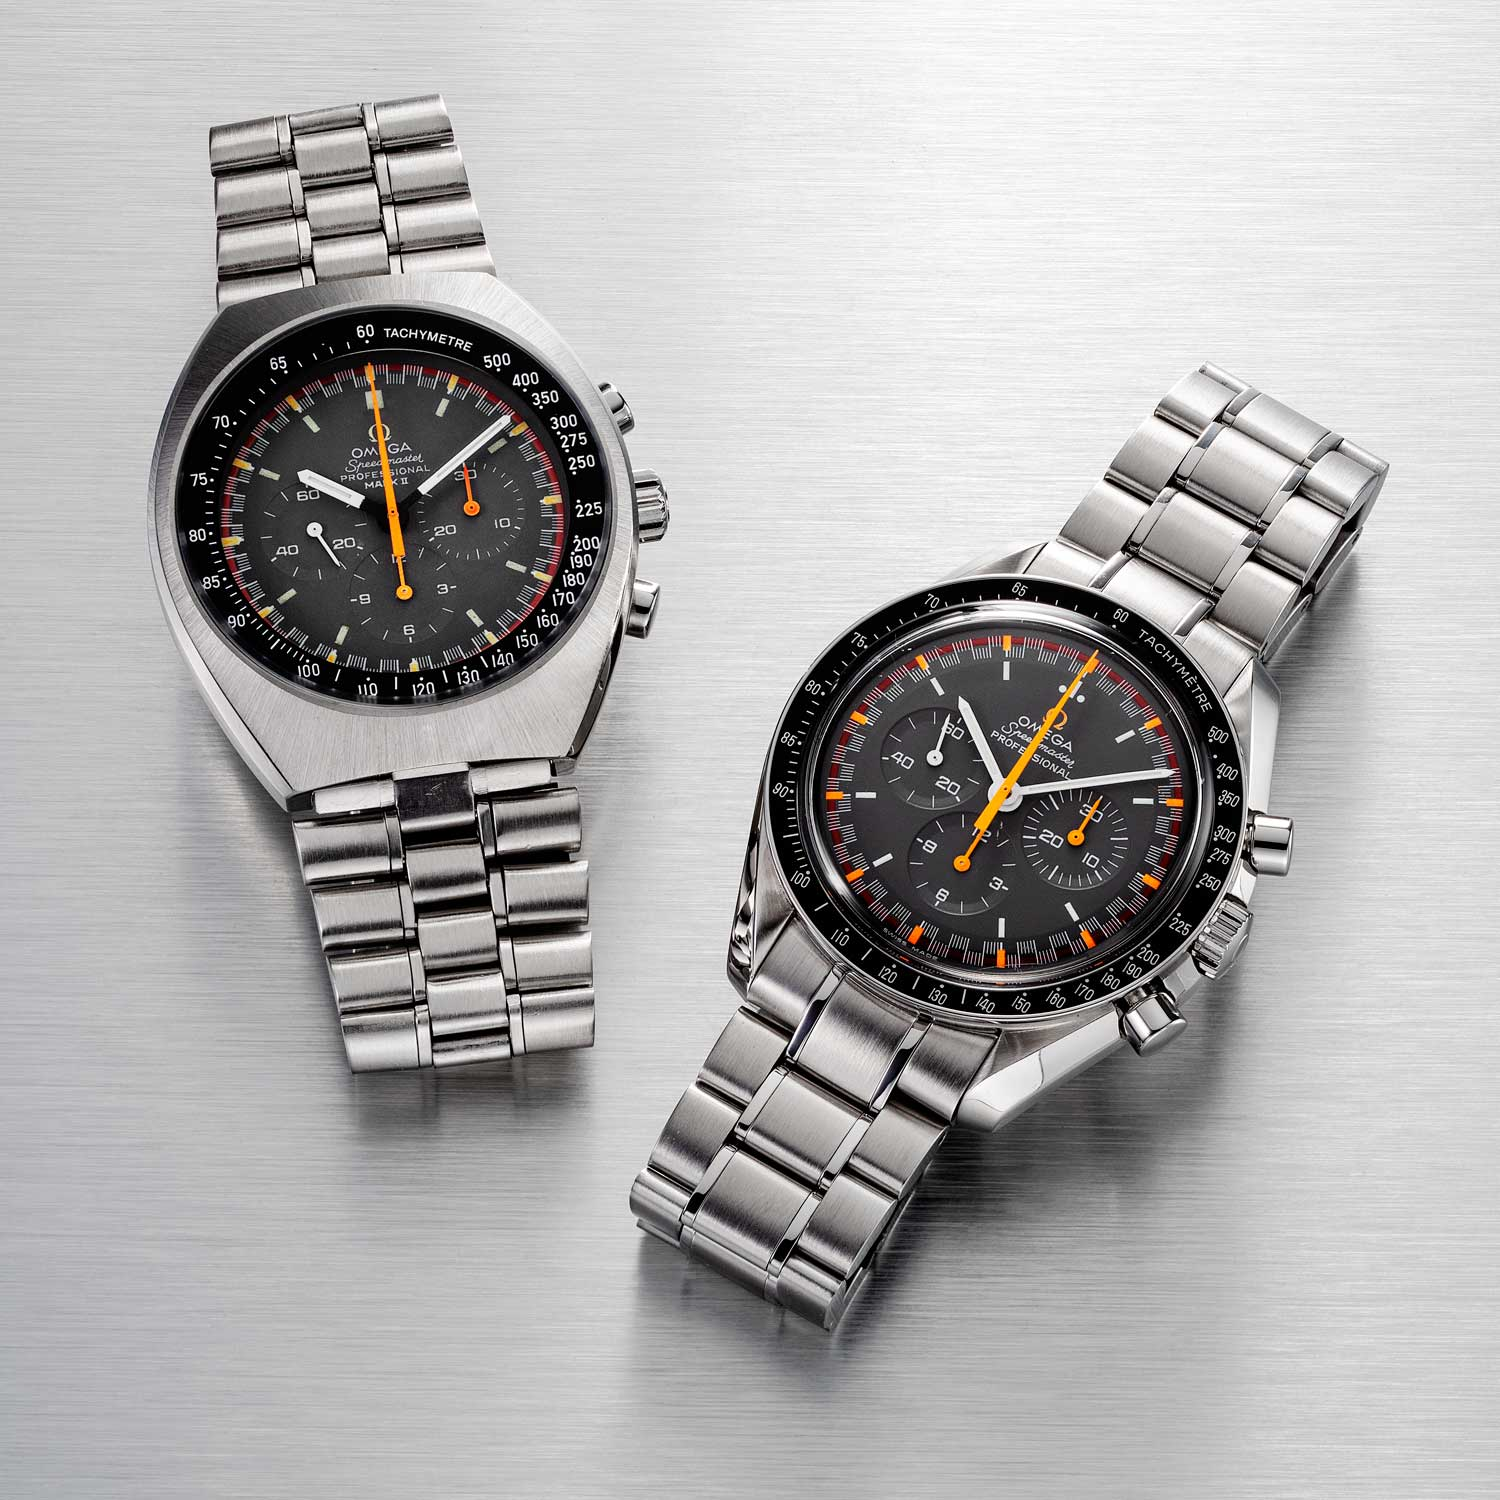 The Mark II and the Limited-Edition Japan Racing Dial (Image: ©Revolution)